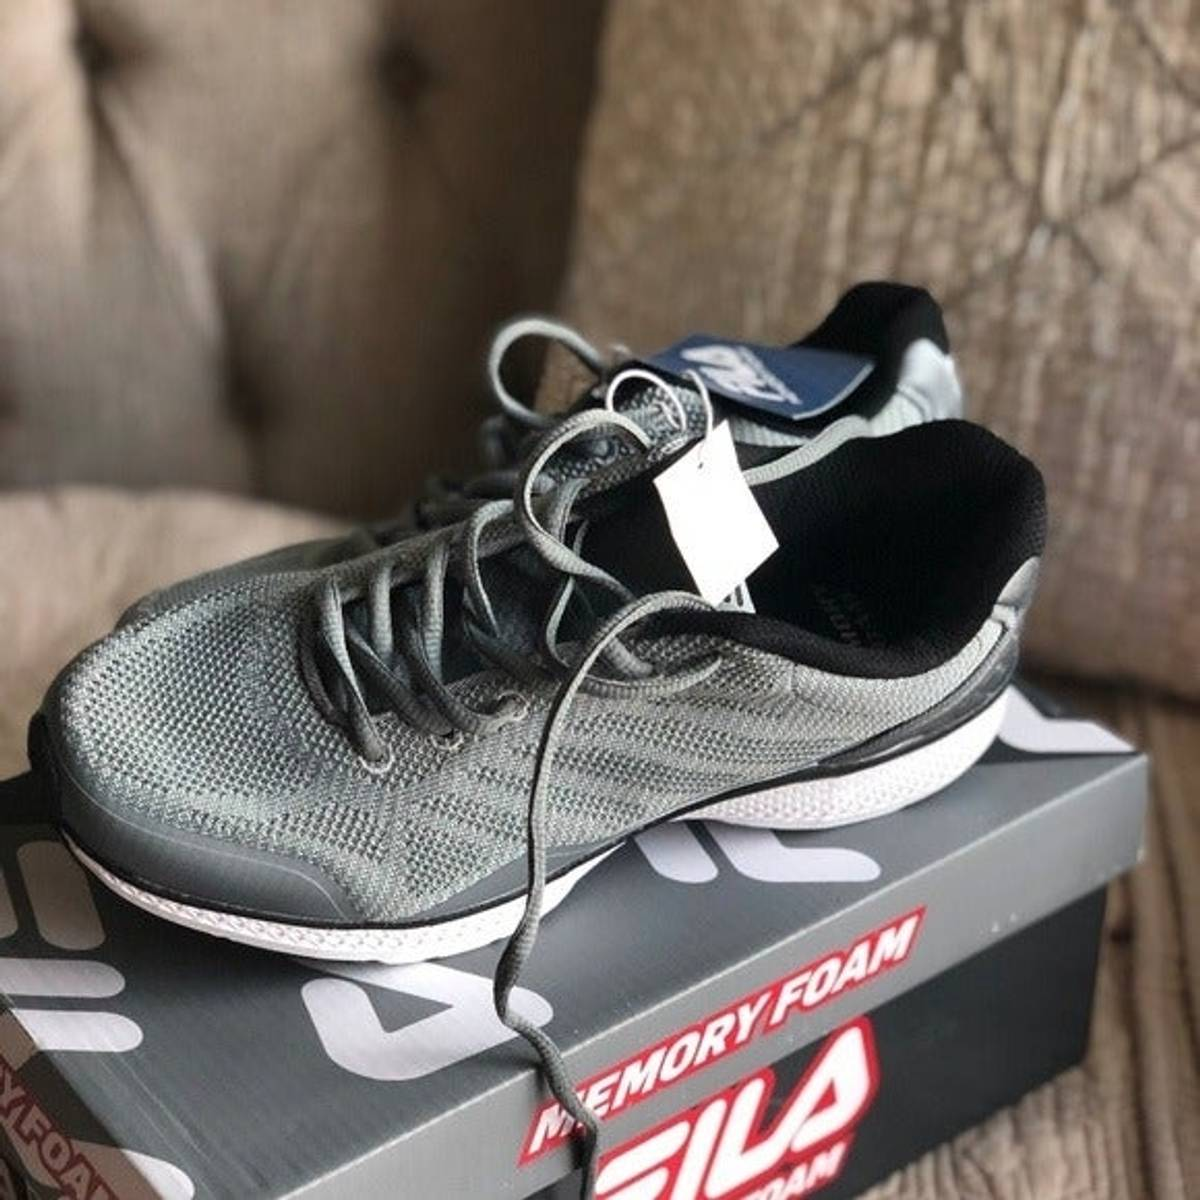 Fila Fila Men's Gray Tennis Shoes Memory Foam Size 8.5 $35